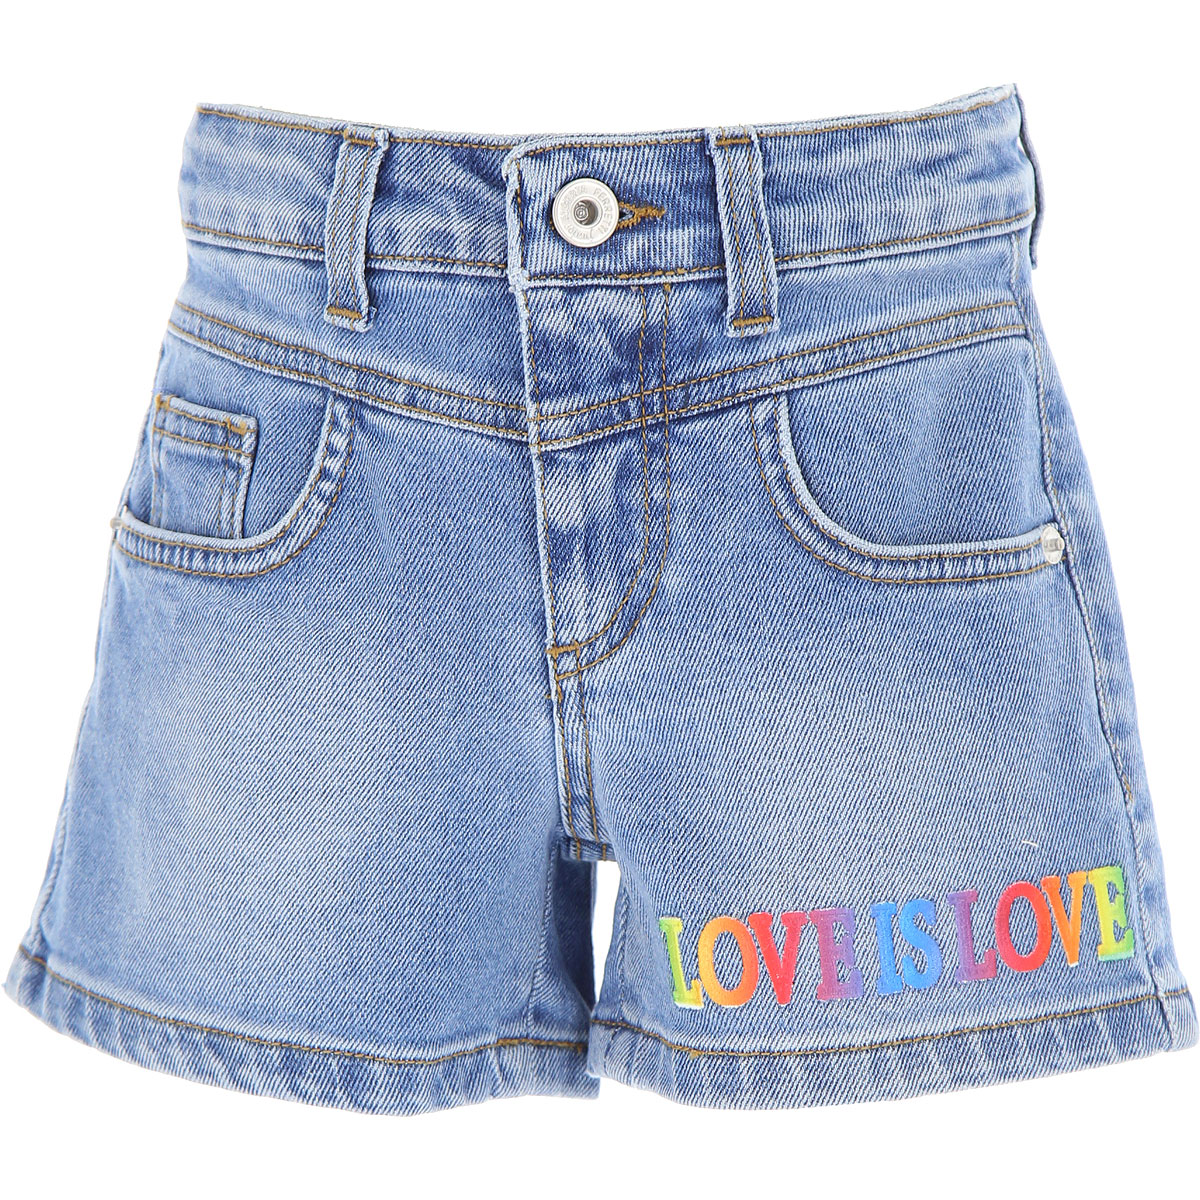 Alberta Ferretti Kids Shorts for Girls On Sale, Blue Denim, Cotton, 2019, 10Y 12Y 4Y 8Y